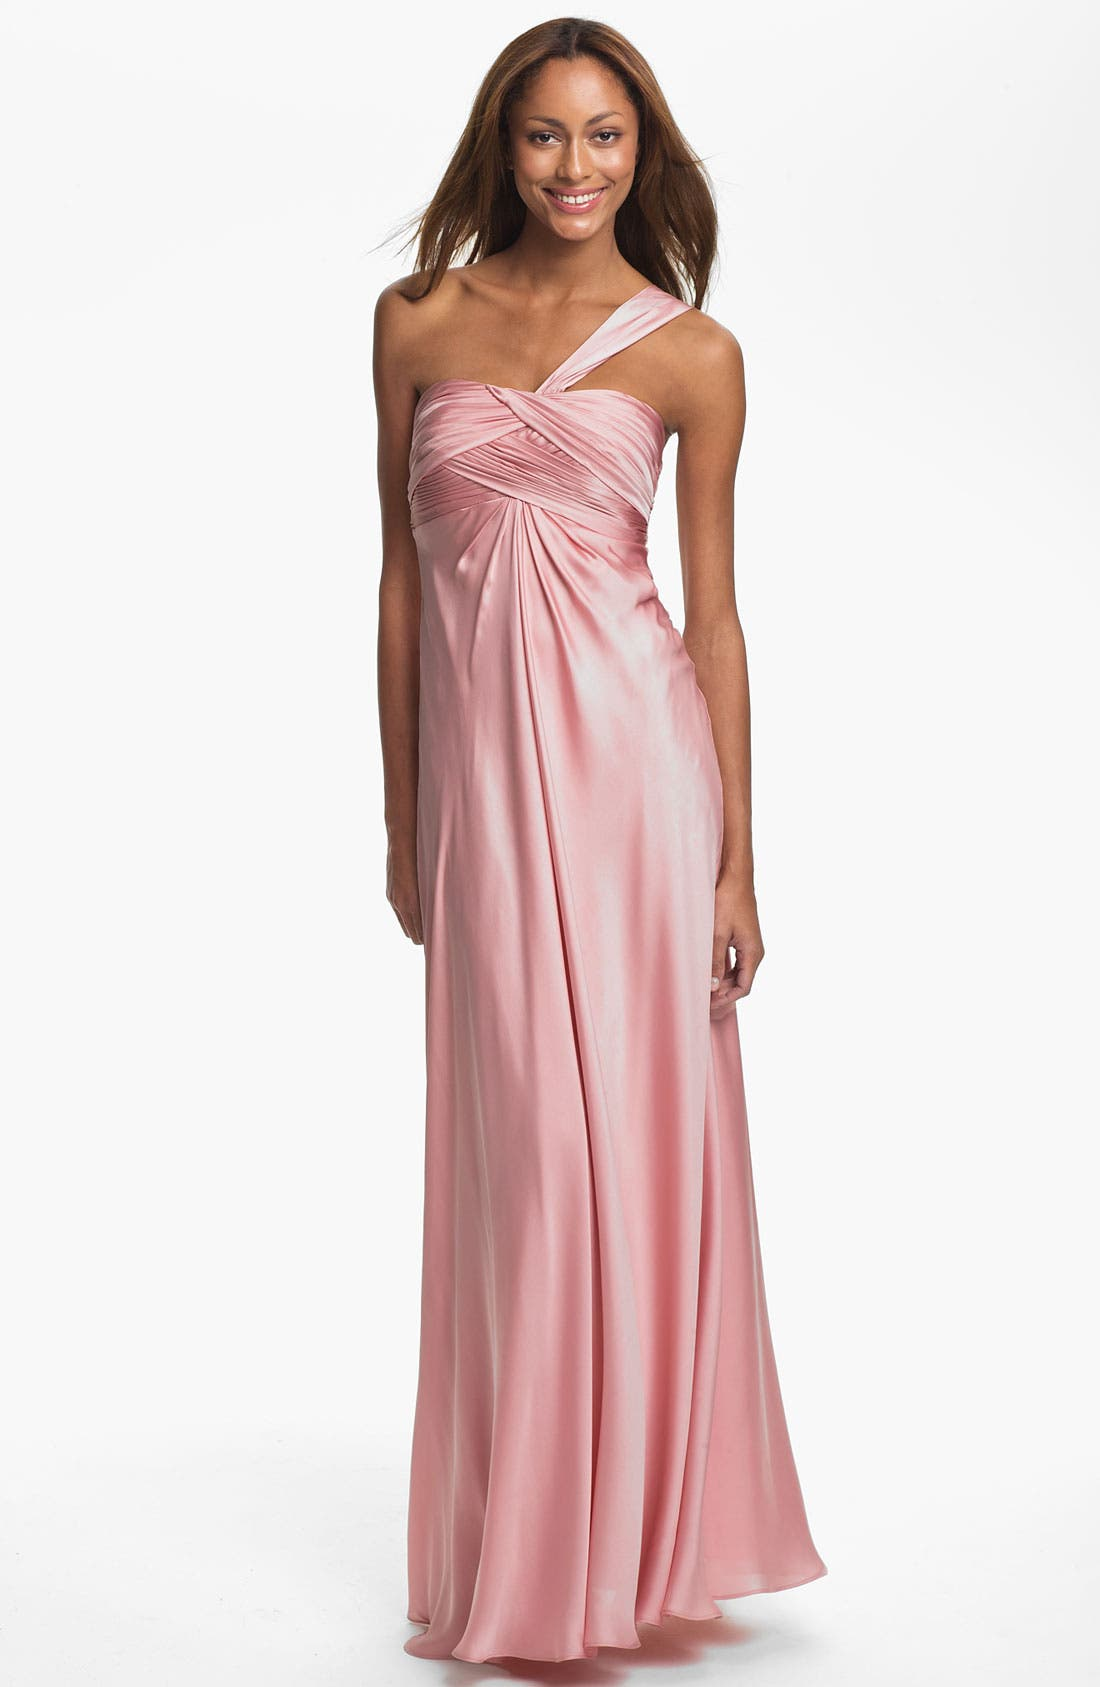 Main Image - ML Monique Lhuillier Bridesmaids One Shoulder Gown (Nordstrom Exclusive)